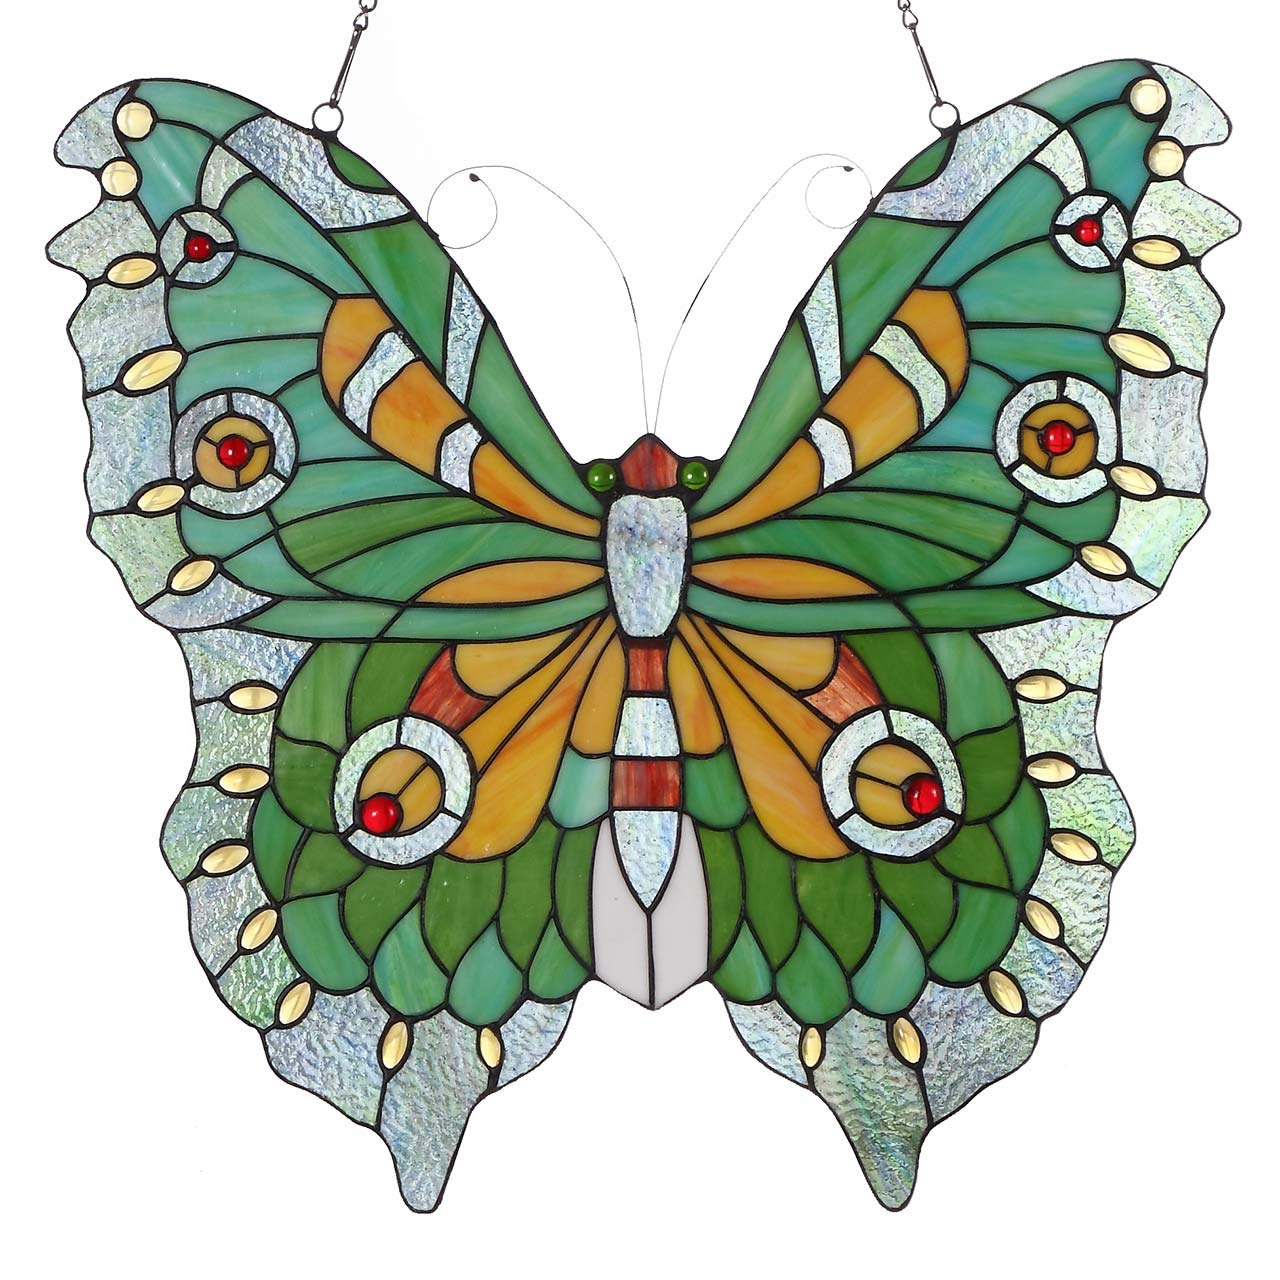 """Bieye W10026 Swallowtail Mariposa Butterfly Tiffany Style Stained Glass Window Panel Hangings with Chain, 22"""" W x 20"""" H (Green)"""